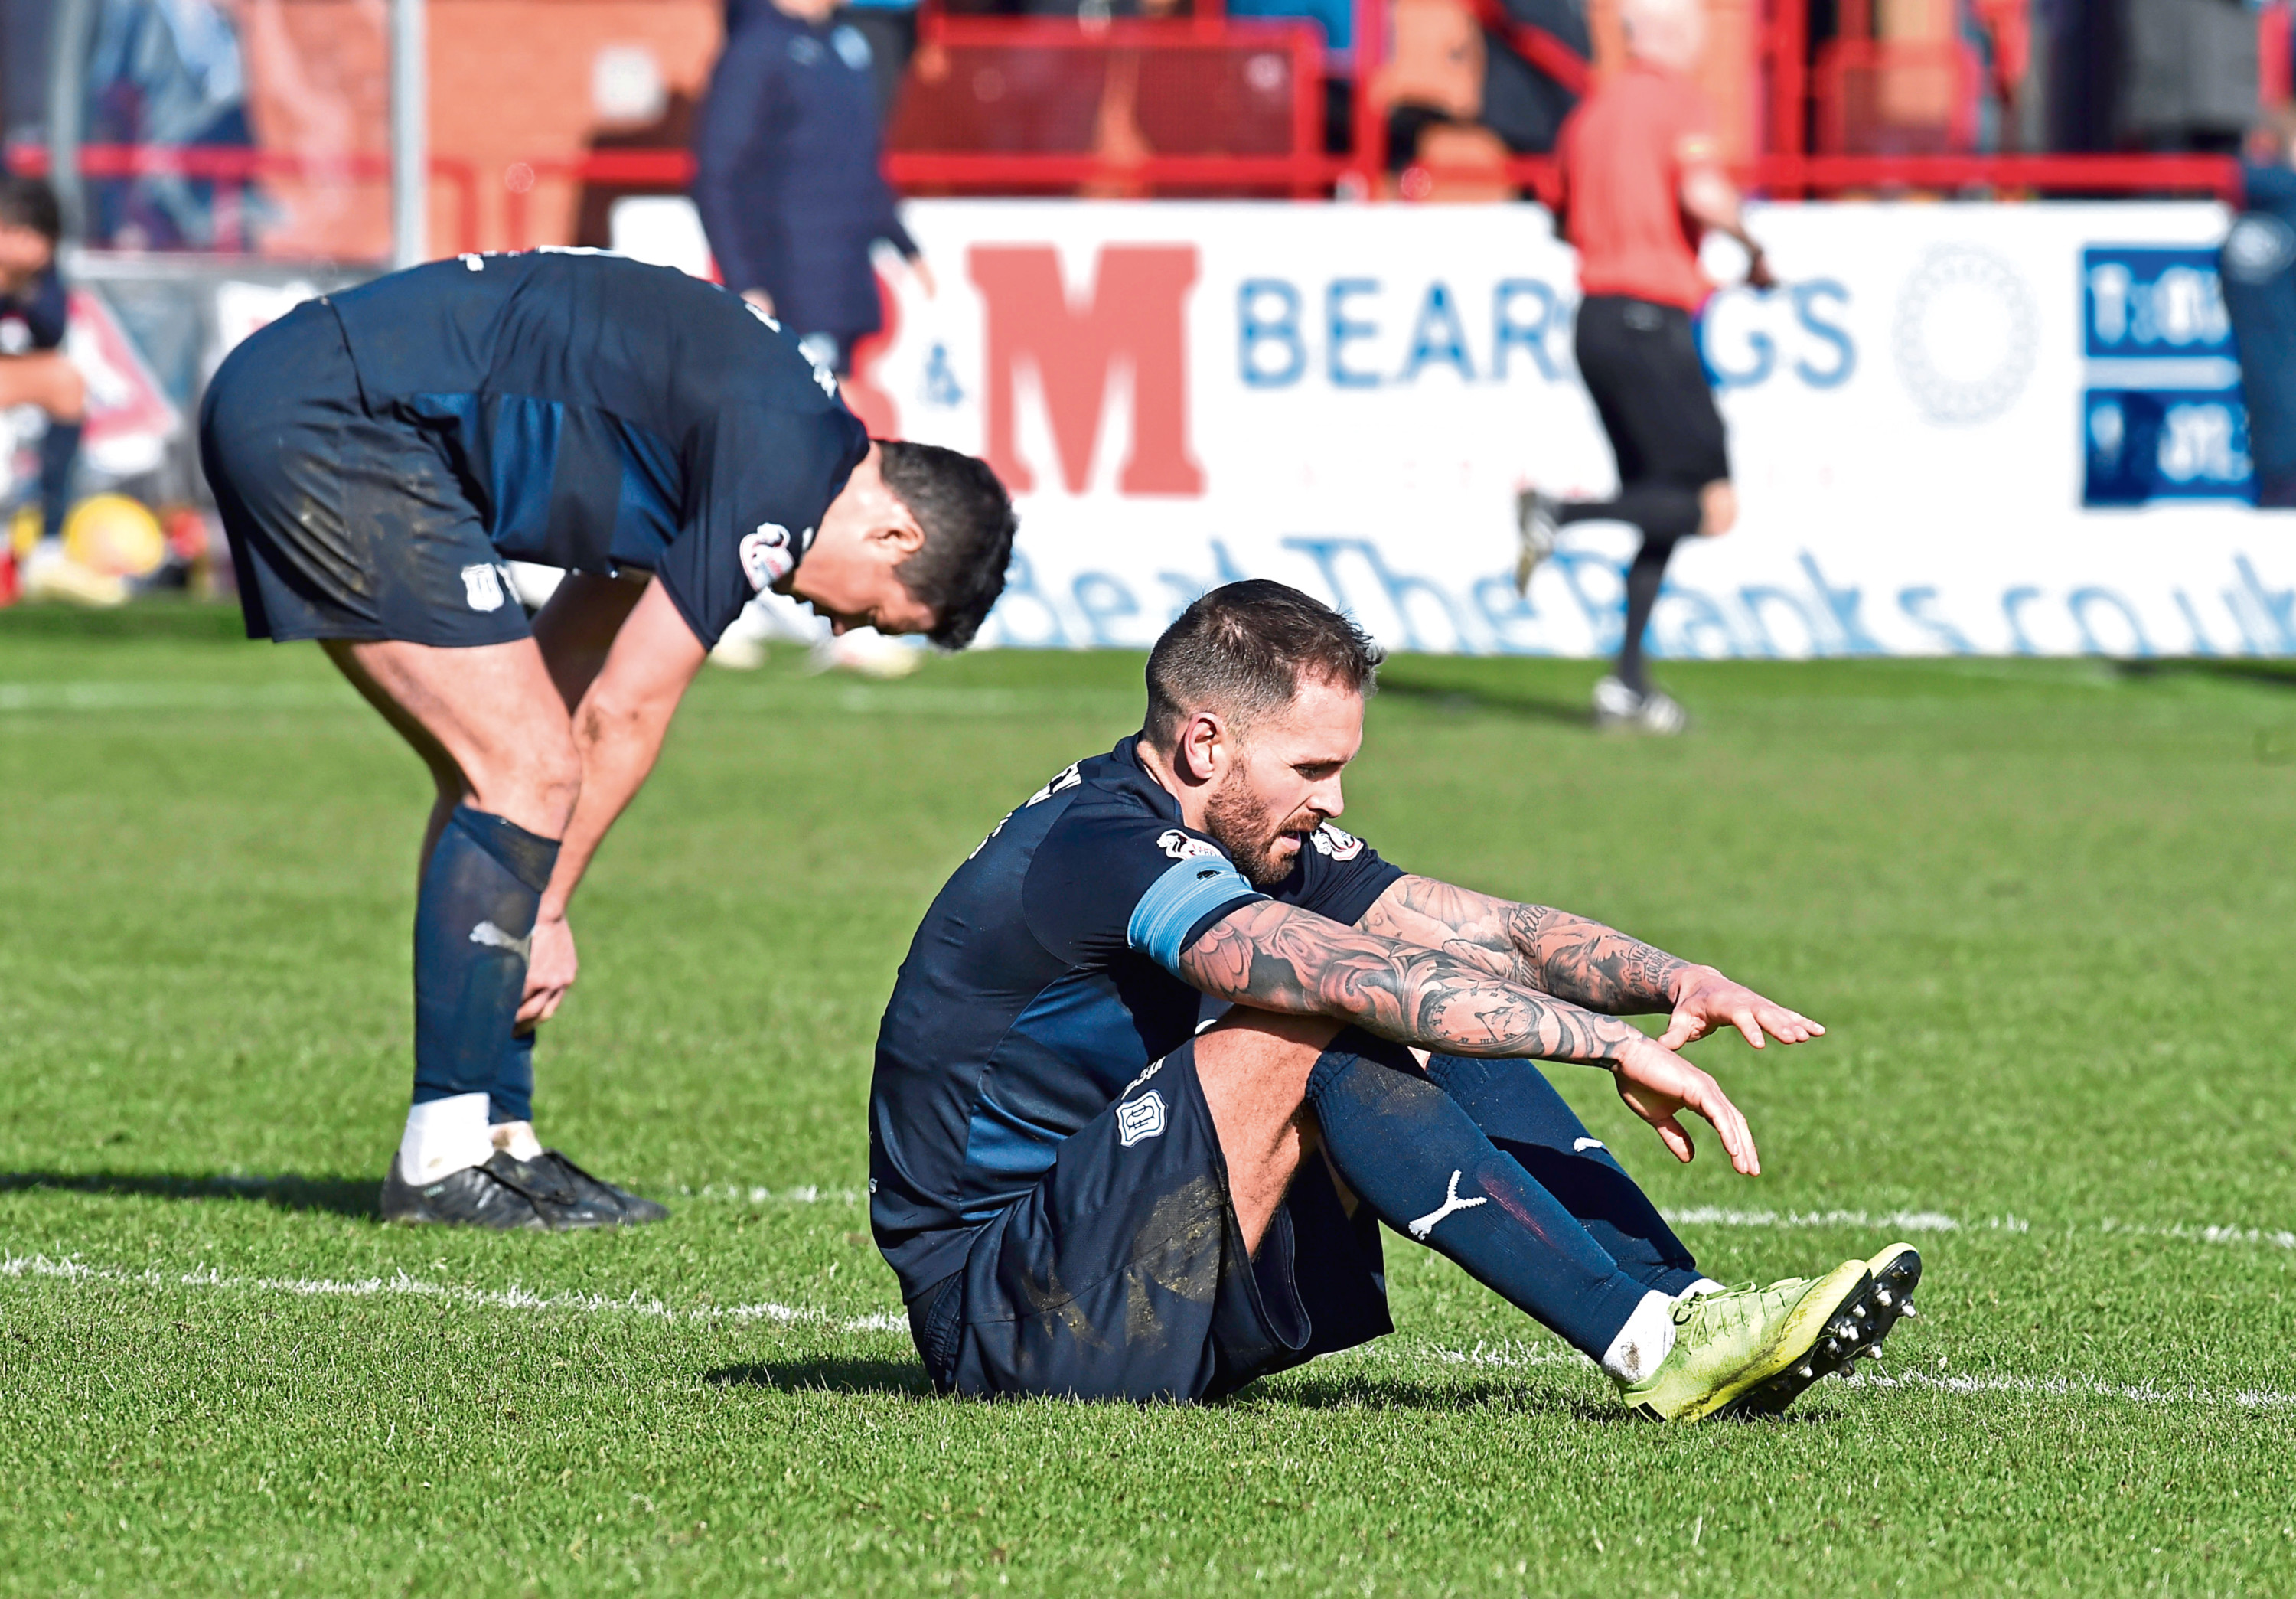 Dundee are facing the drop with a six-point gap to make up and only four matches to do so. Only four wins will prevent them winning the lowest amount of points in a Premeirship campaign.